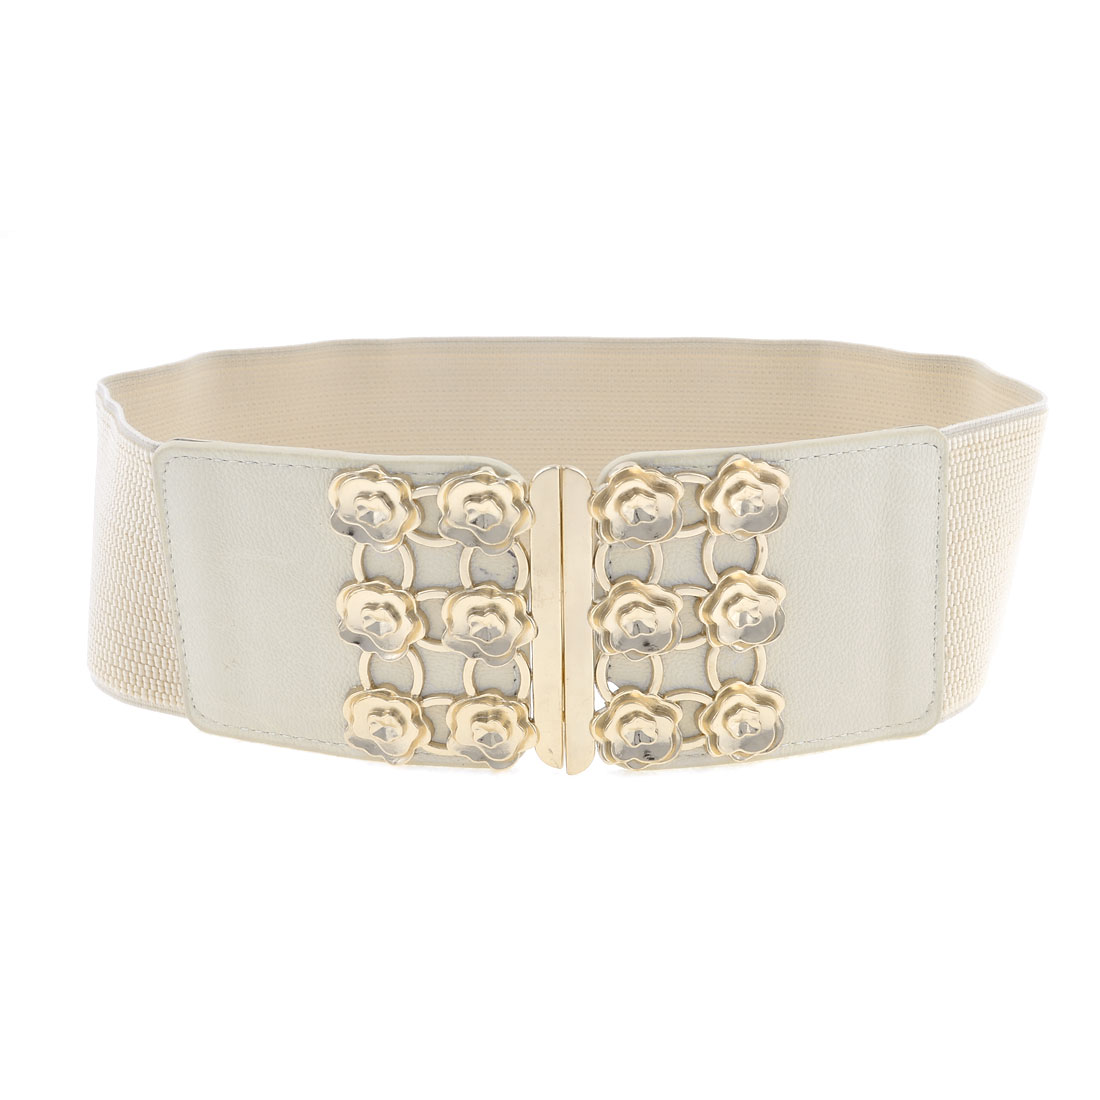 Women Interlocking Closure Rose Flowers Decor Elastic Waistband Waist Belt Khaki